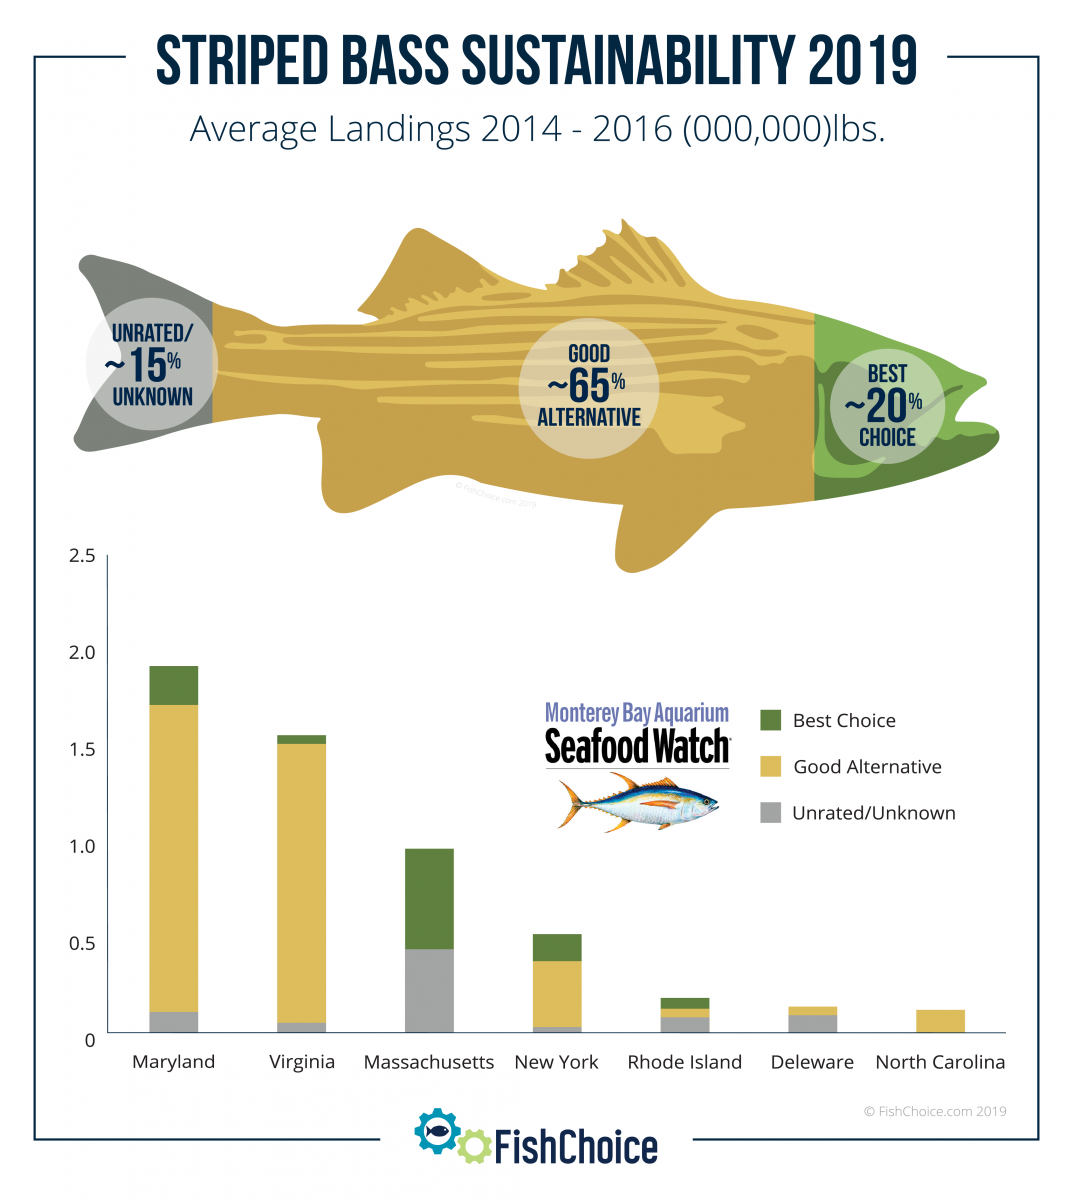 Striped Bass Sustainability